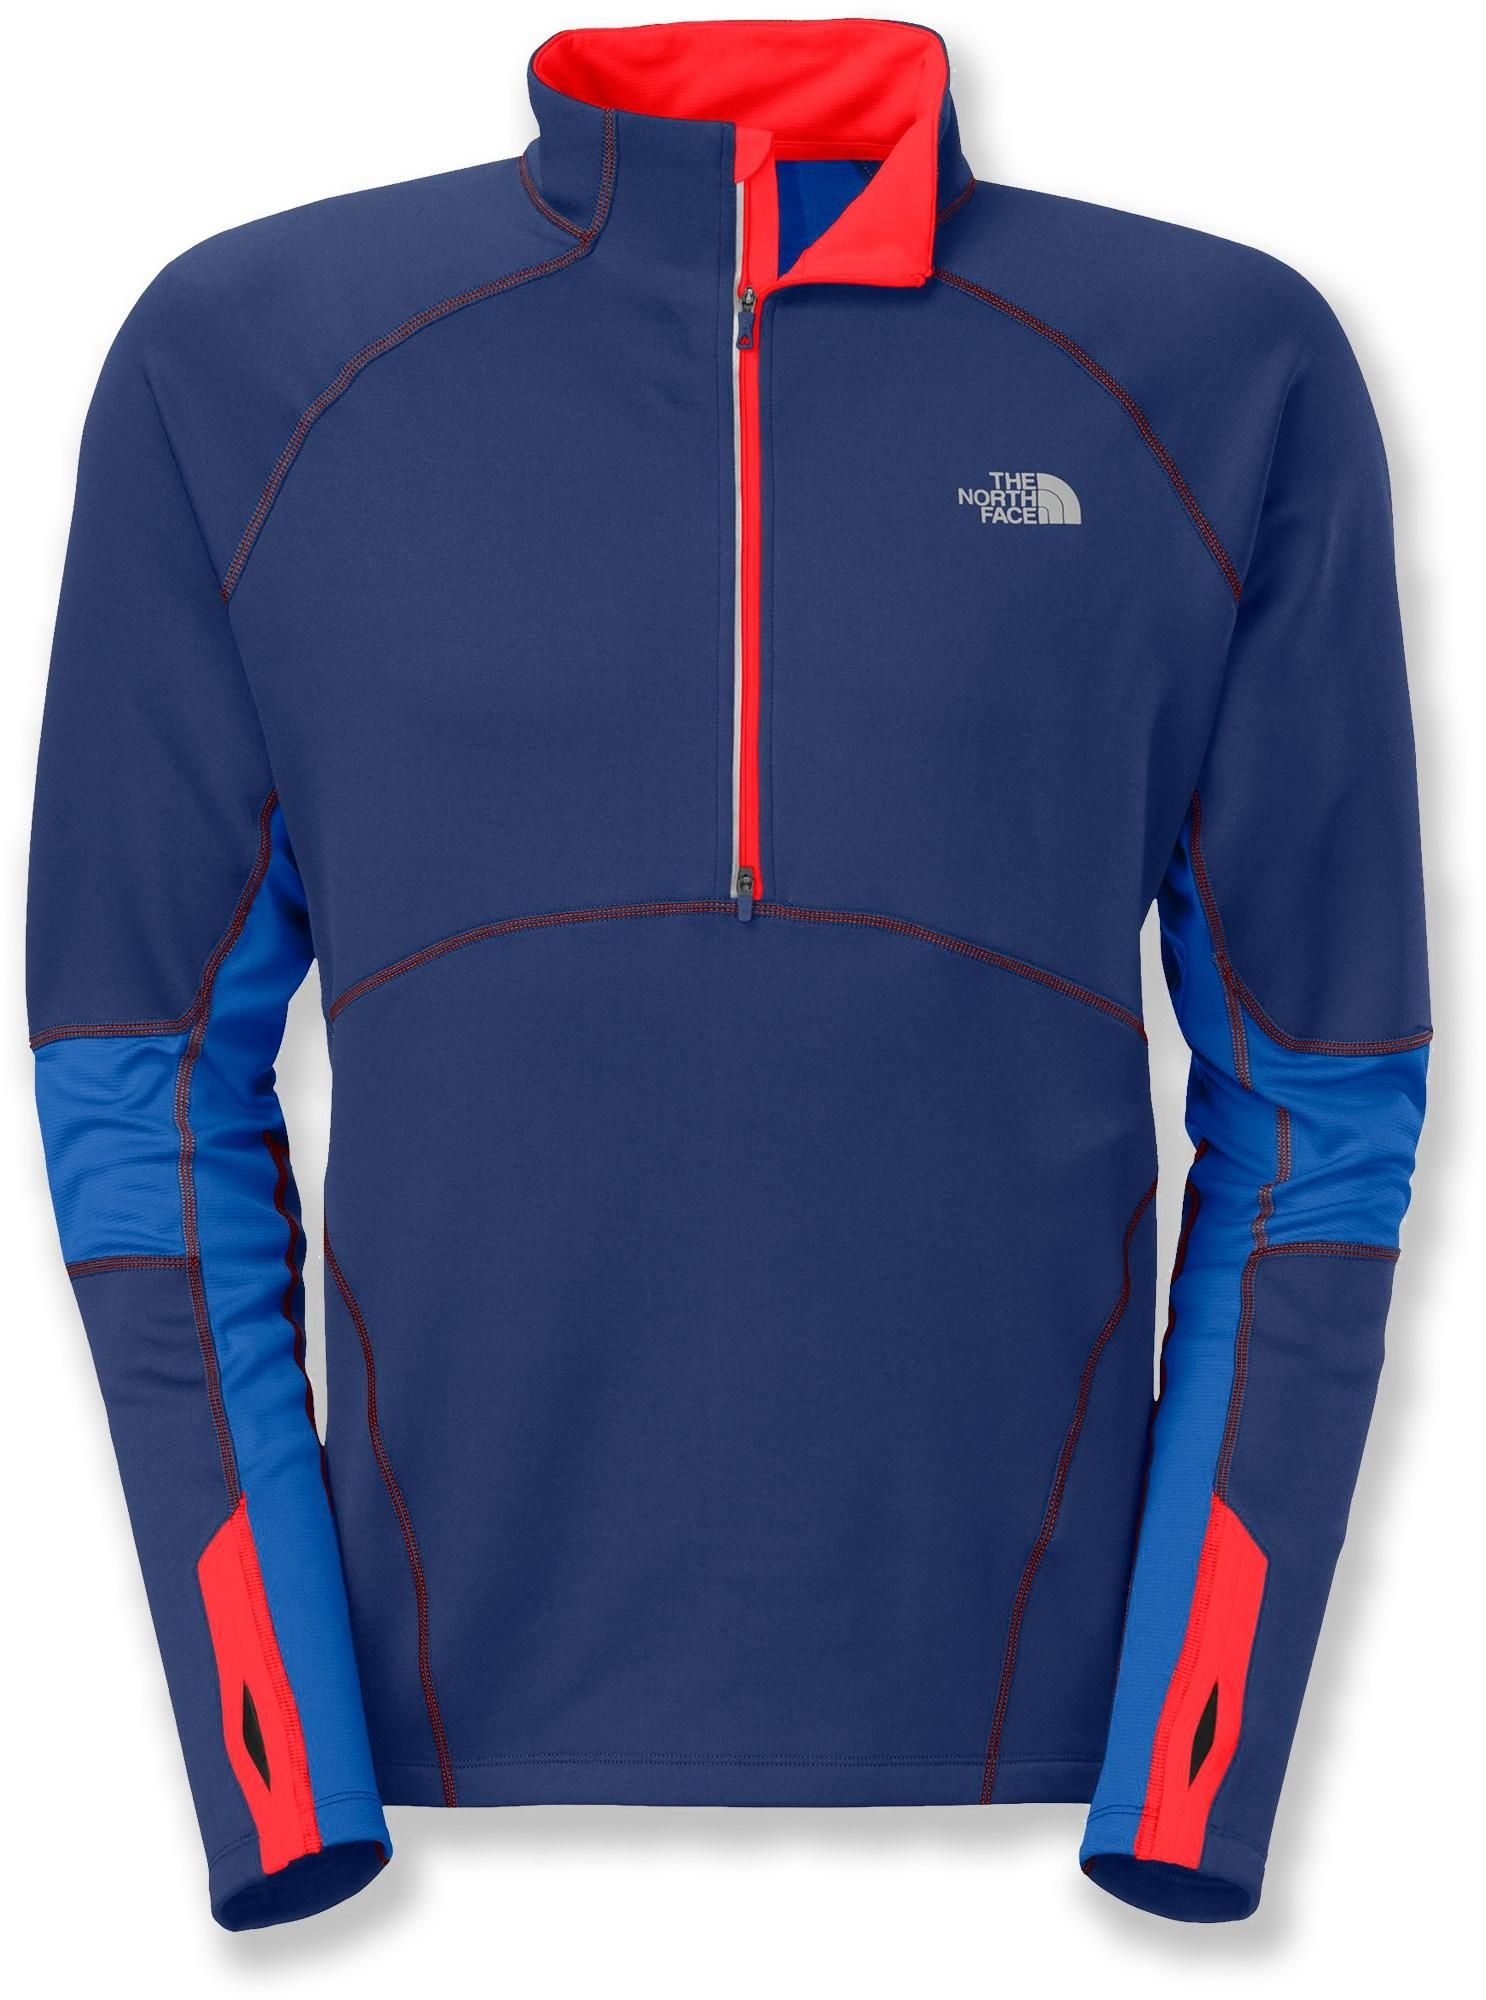 b30a35ad8 The Momentum Thermal half-zip top from The North Face delivers lightweight,  unrestricted warmth. #REIGifts